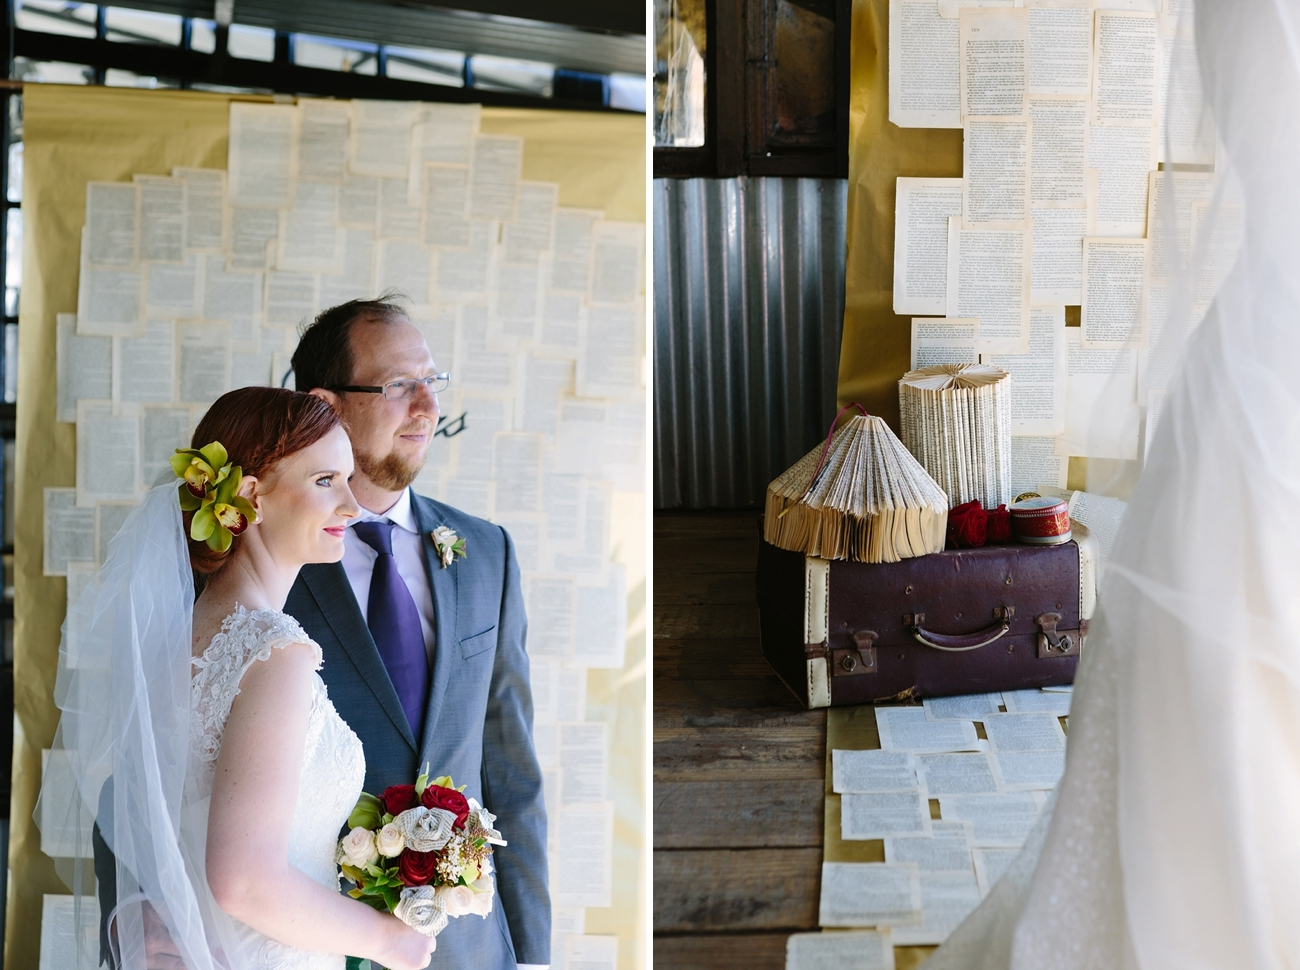 Literature Themed Wedding Ceremony | Credit: Andries Combrink & Runaway Romance